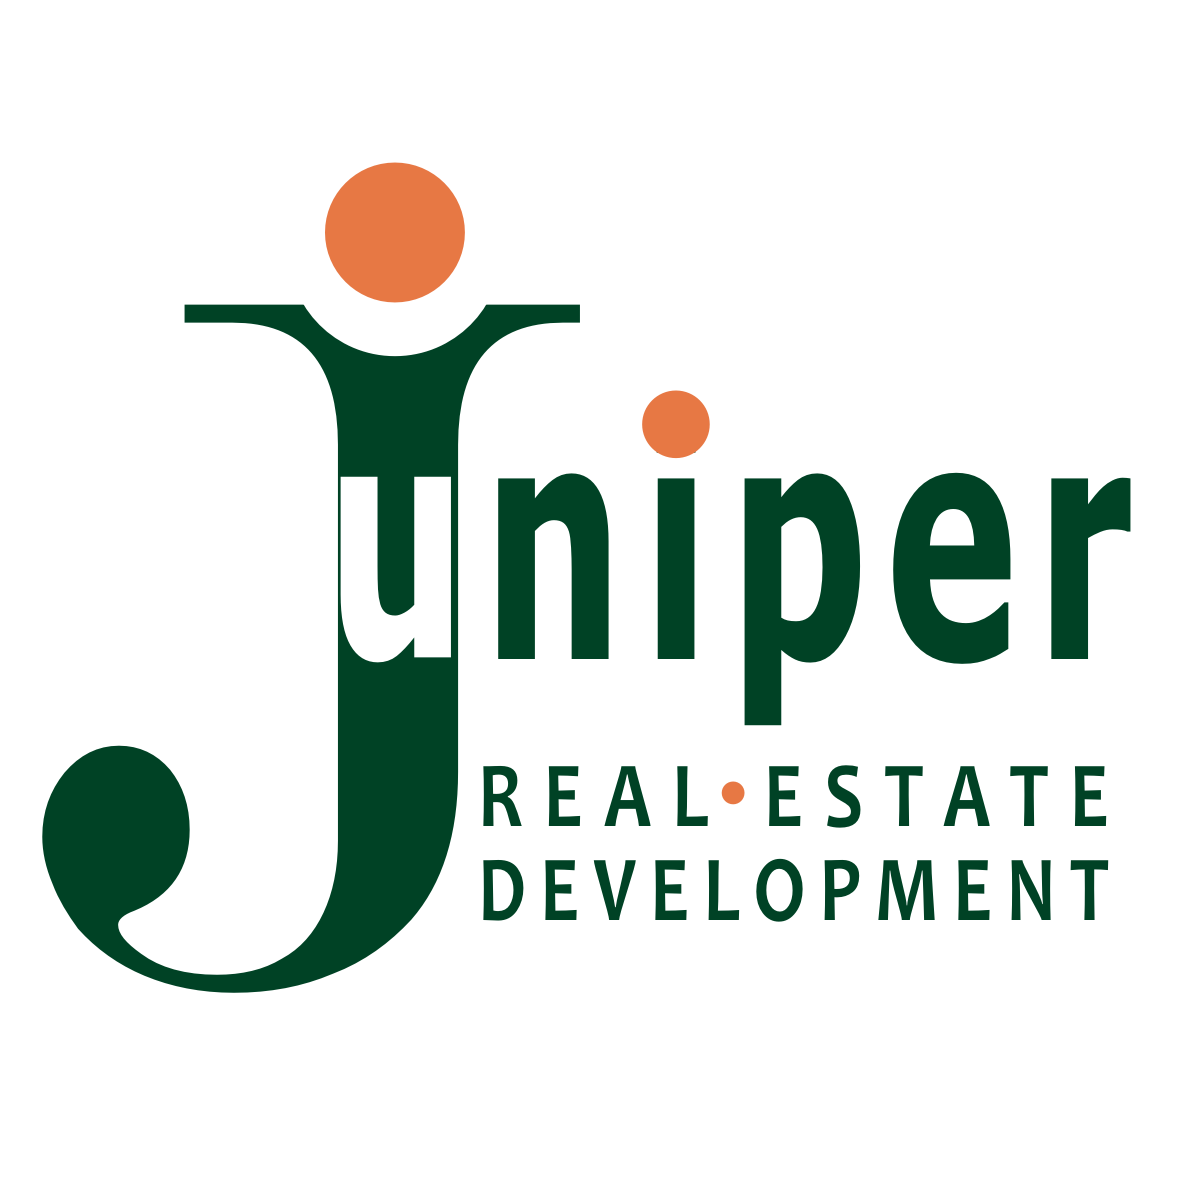 Logo Design by ElisG - Entry No. 20 in the Logo Design Contest Juniper.